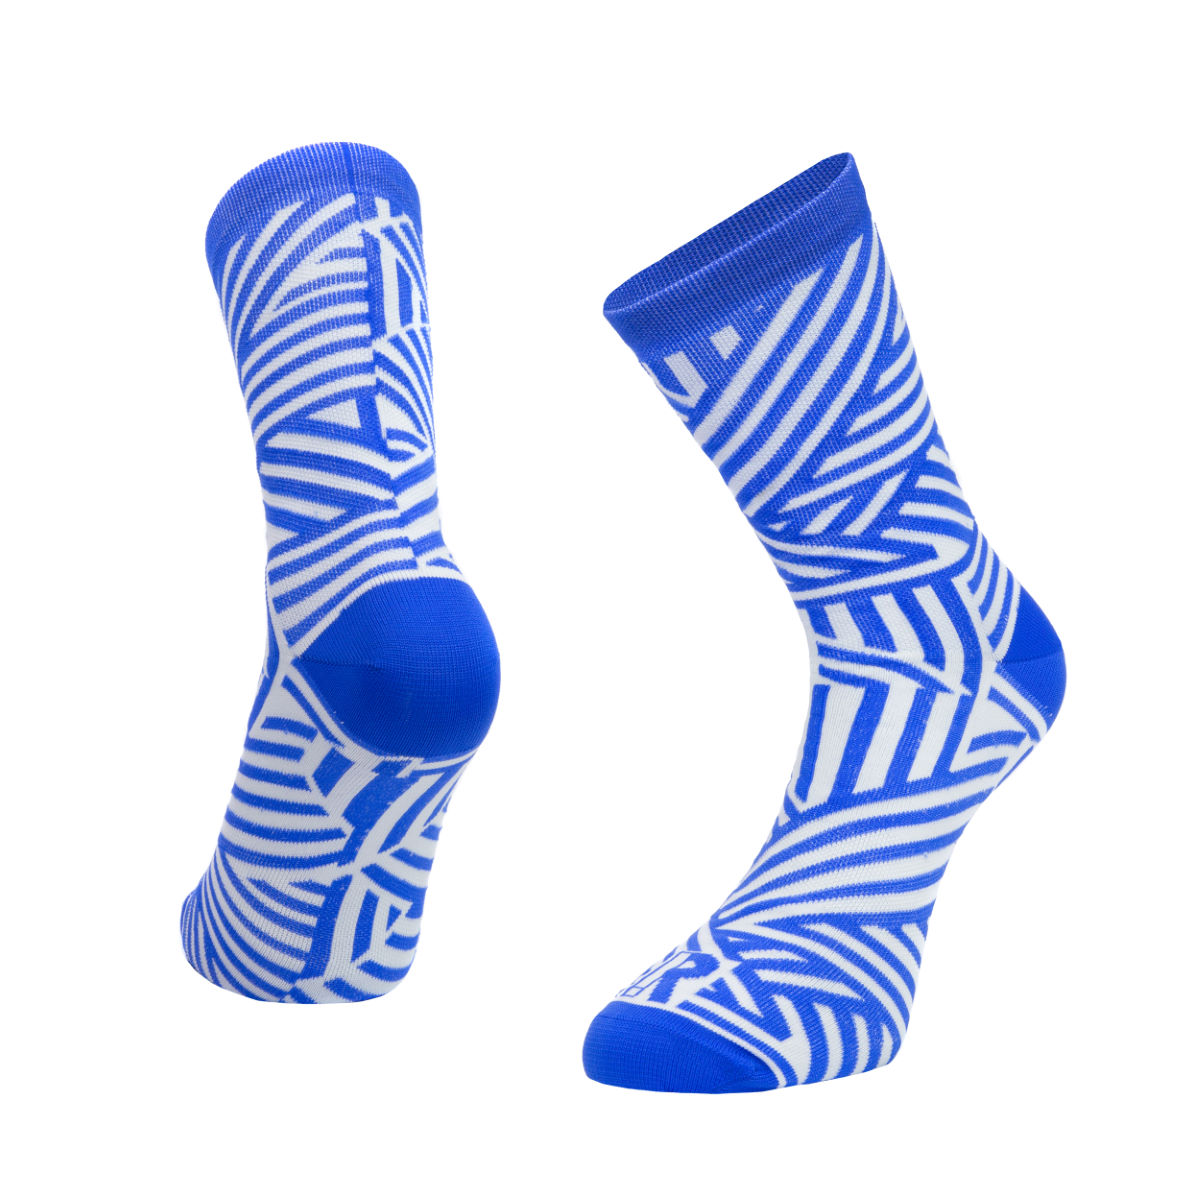 Ratio Dash 16cm Sock (Blue) - Calcetines